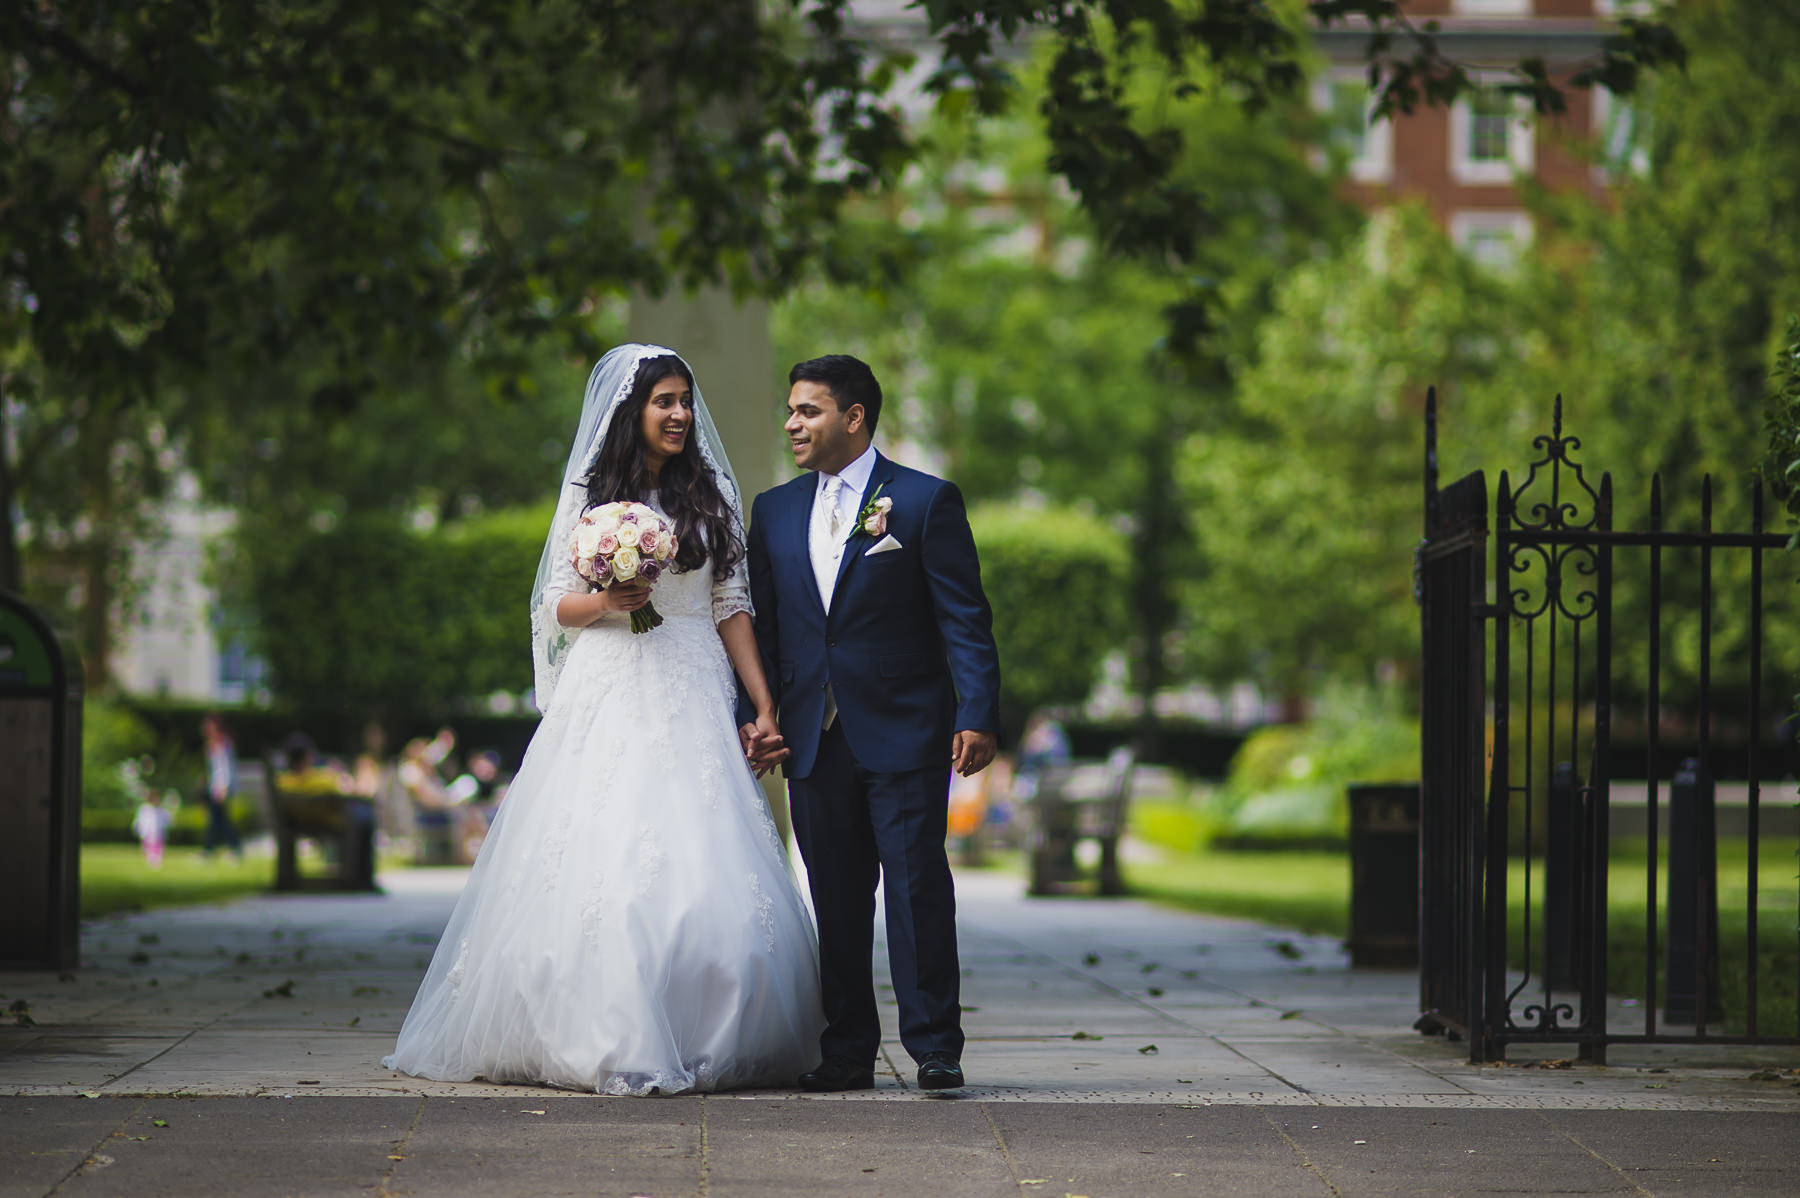 Grosvenor Square Mayfair Wedding Photography